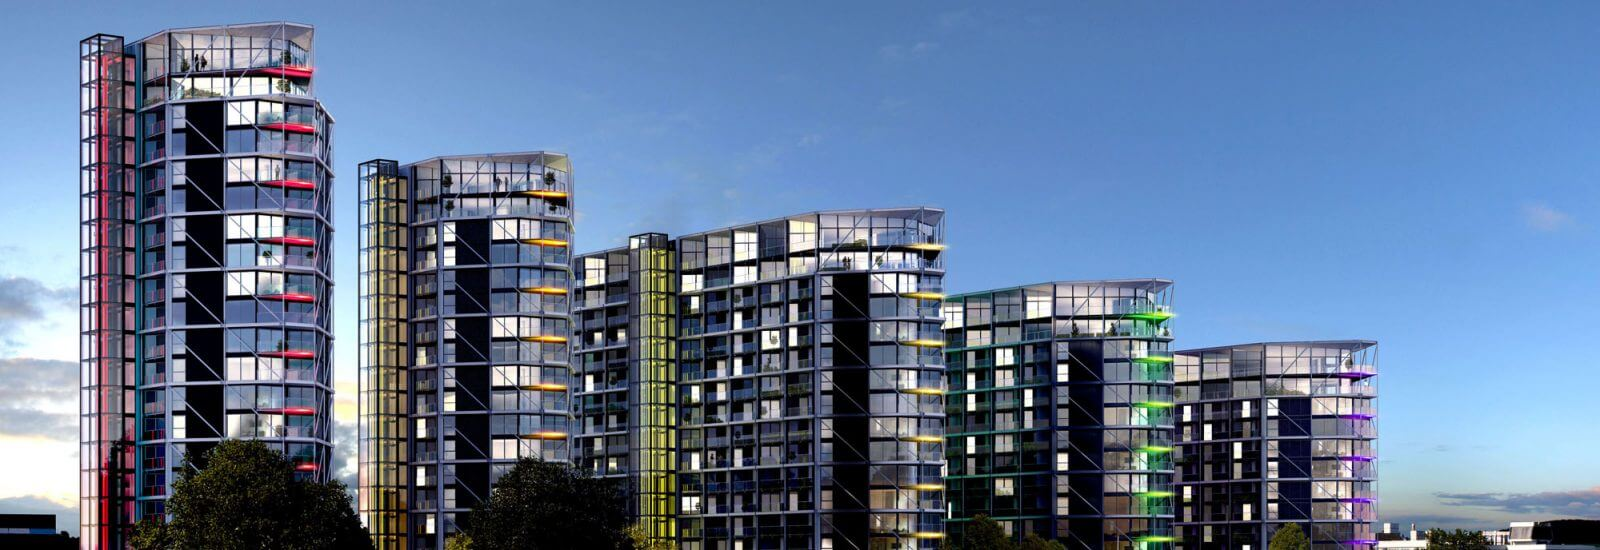 New Heights for Riverlight with RIBA National Award Win